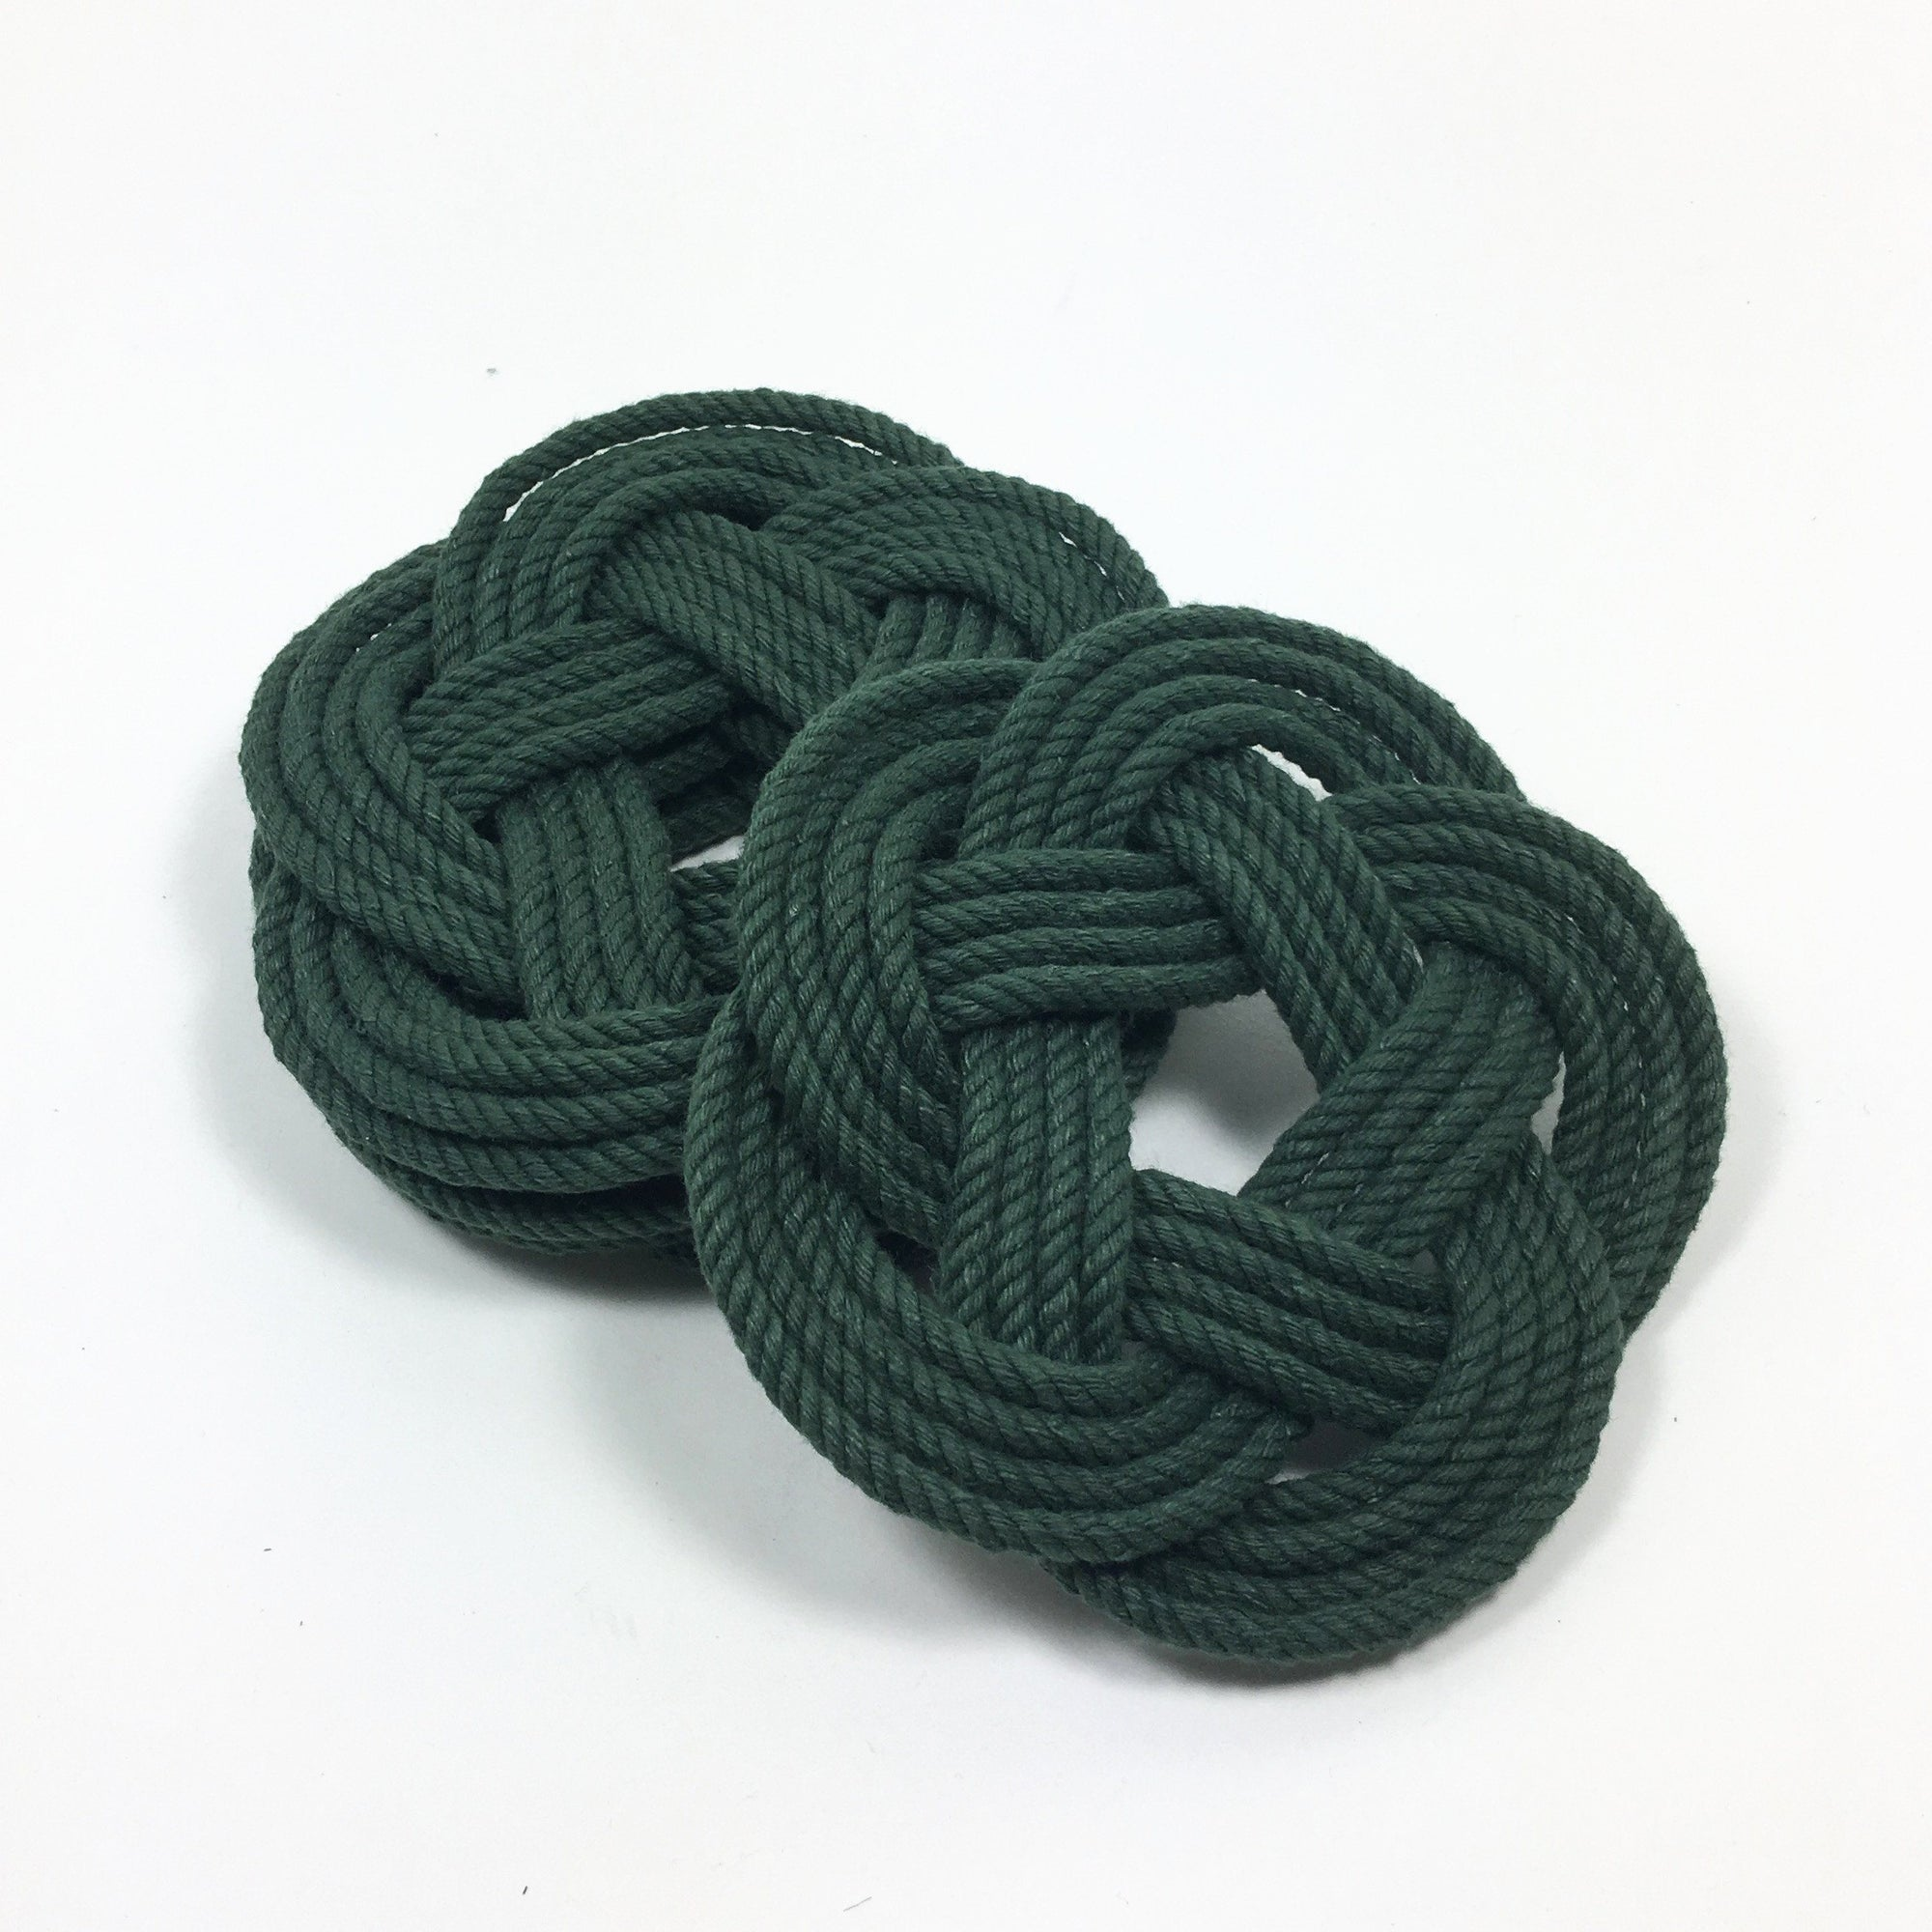 Nautical Sailor Knot Coasters, Forest Green , Set of 4 Handmade sailor knot American Made in Mystic, CT $ 20.00